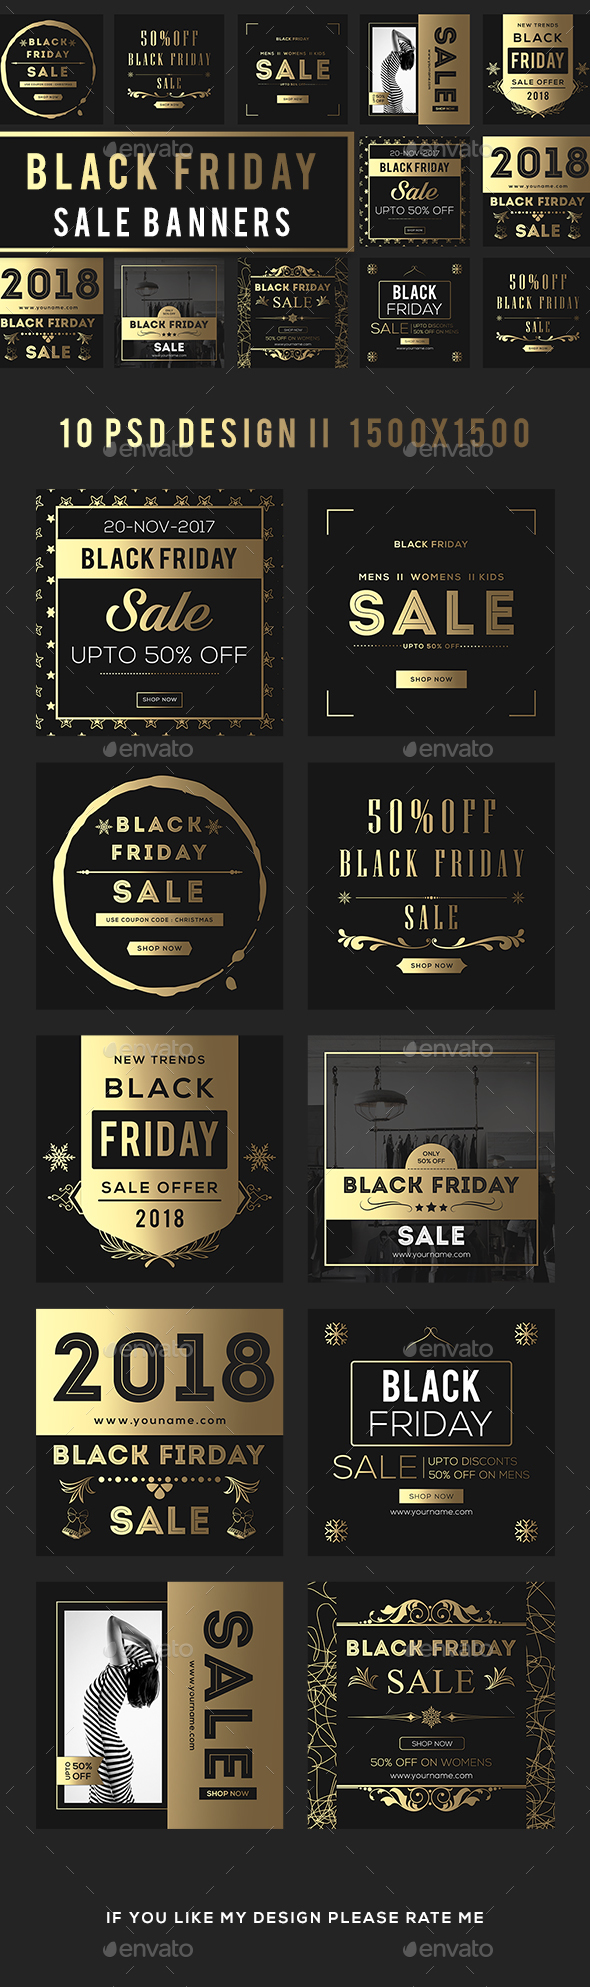 Golden Black Friday Sale Banners - Banners & Ads Web Elements